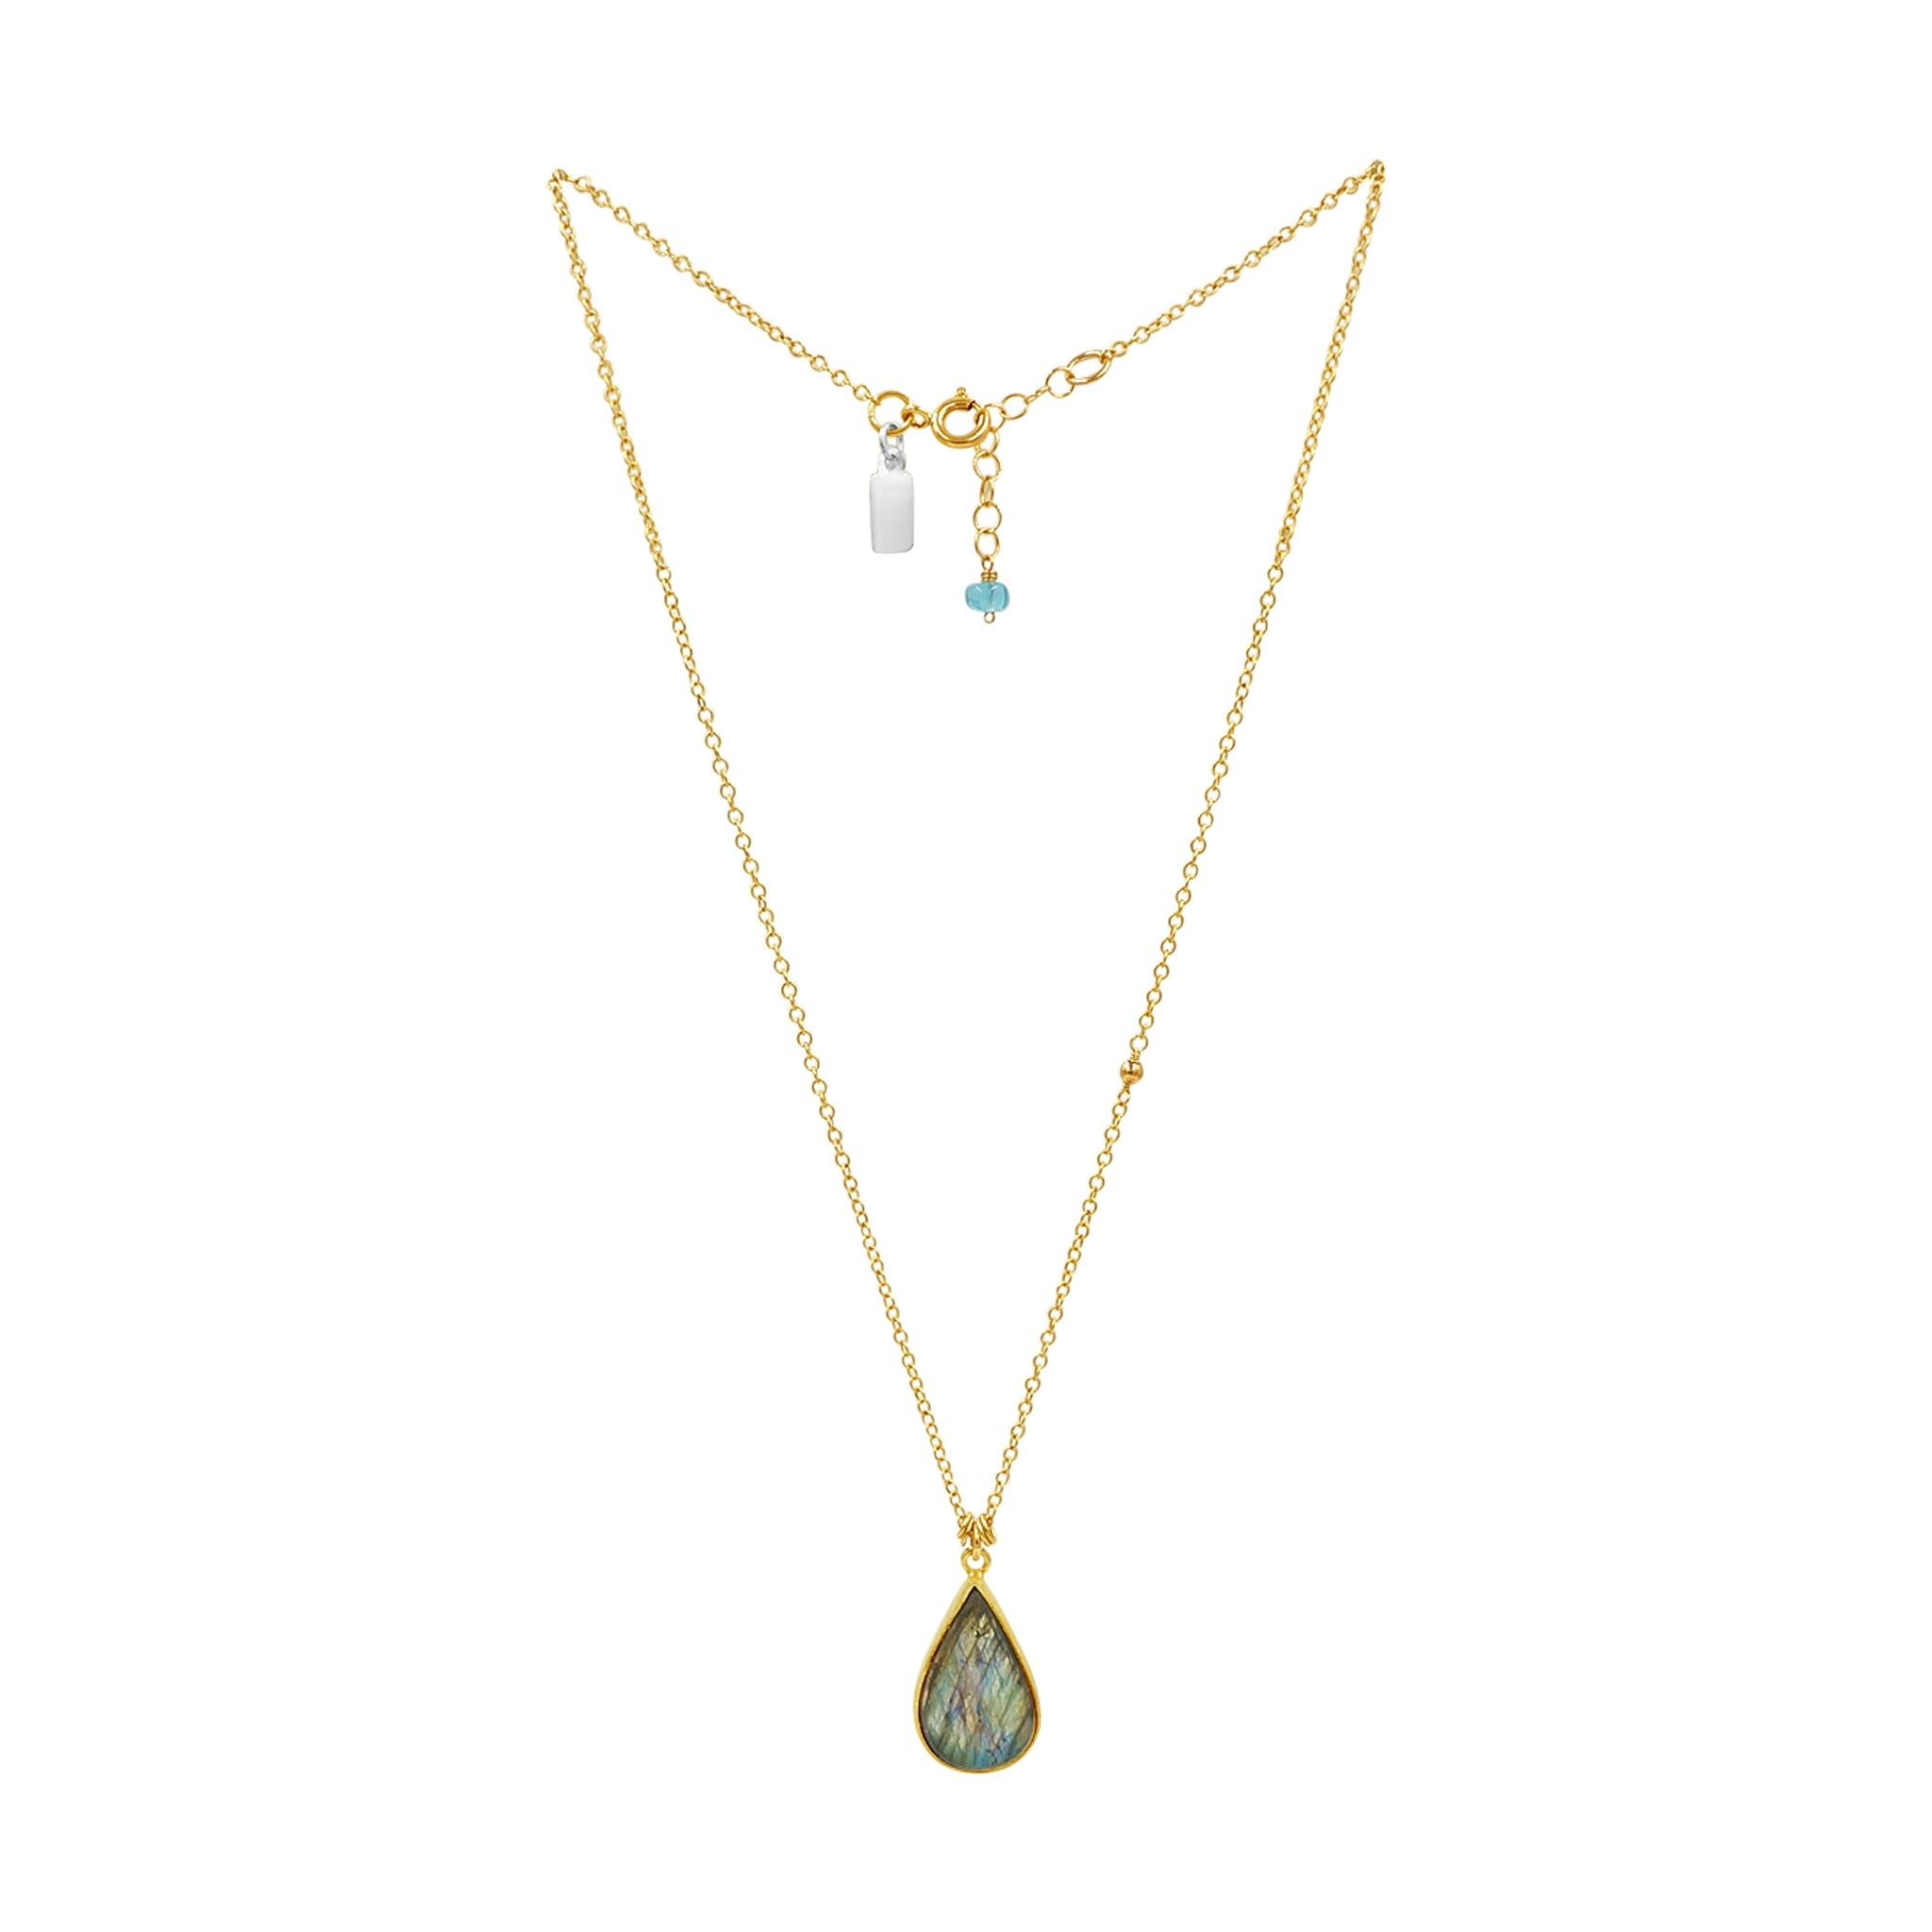 Labradorite Magic Gold Necklace - Sati Gems Hawaii Healing Crystal Gemstone Jewelry